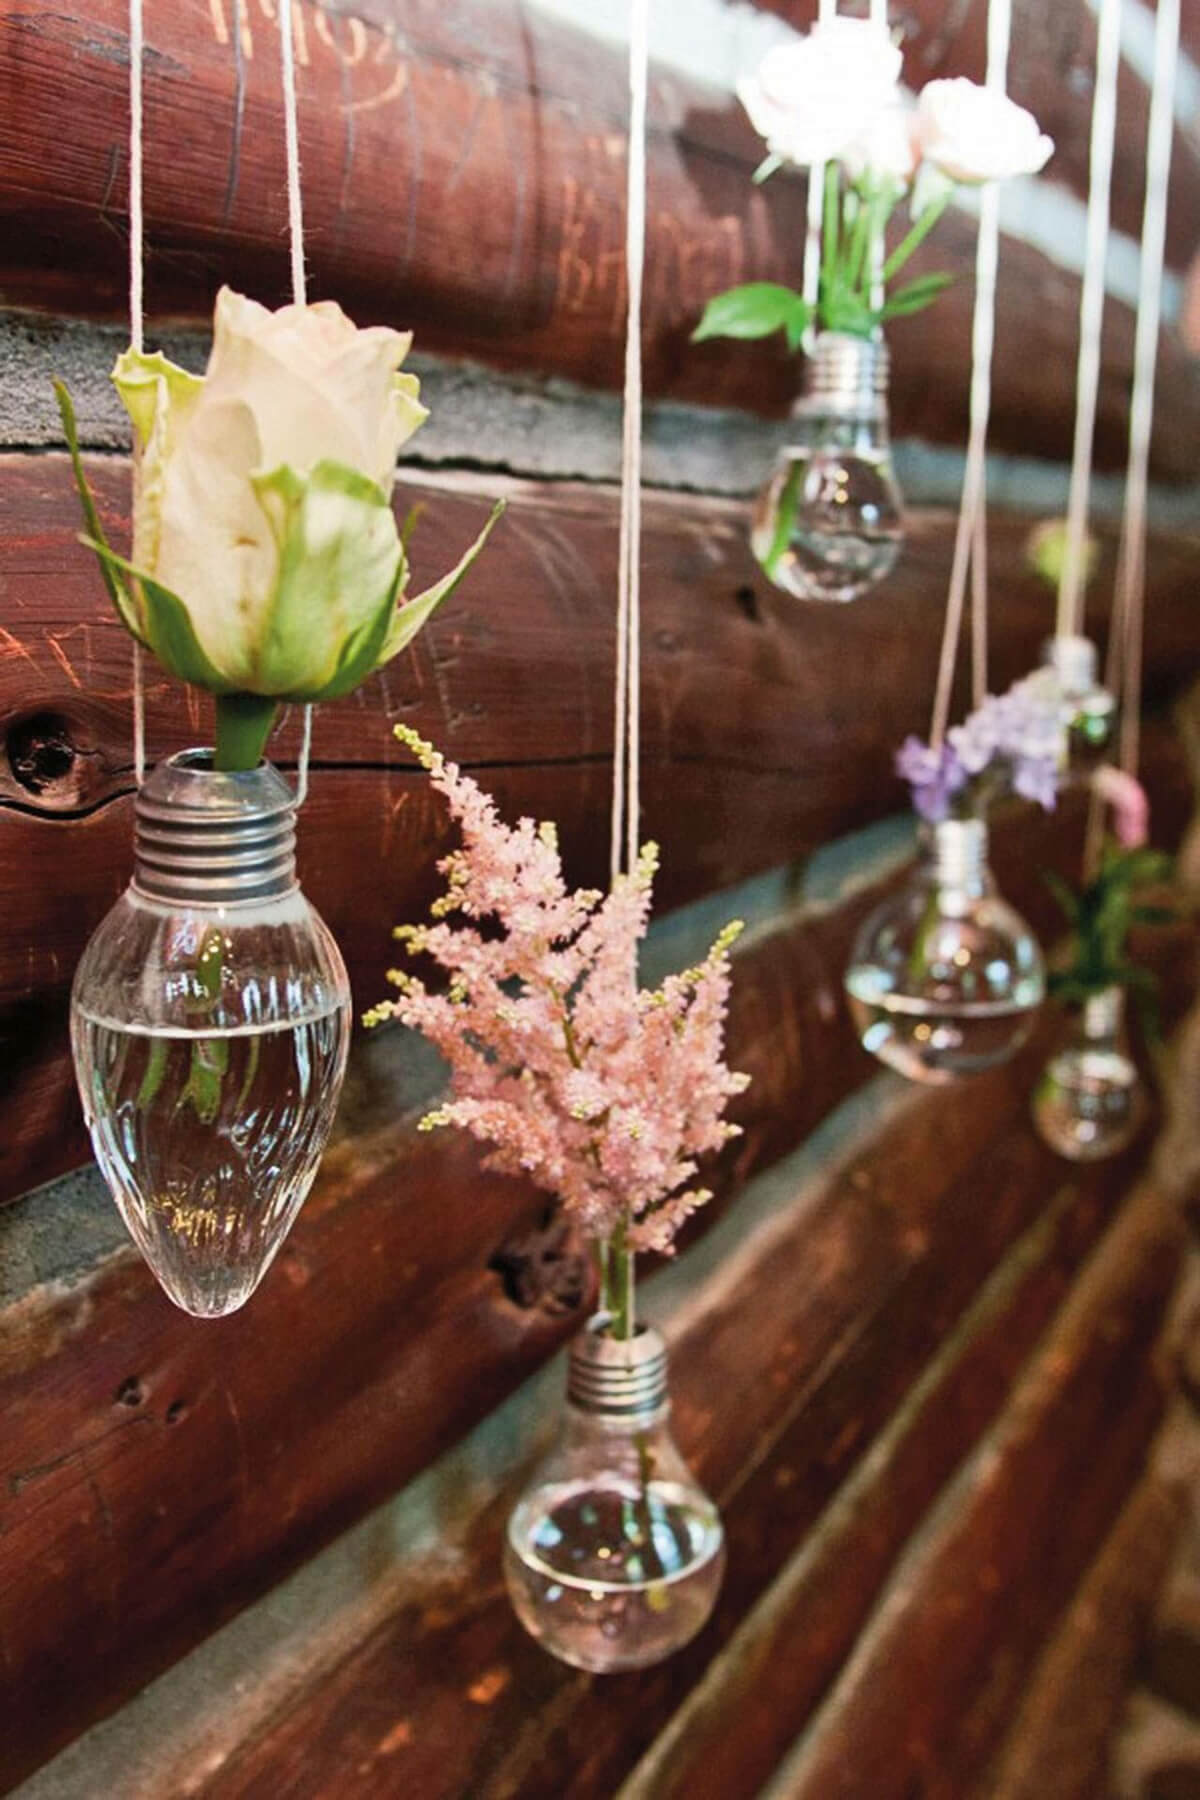 Vintage Lightbulb Vases for Tiny Blooms